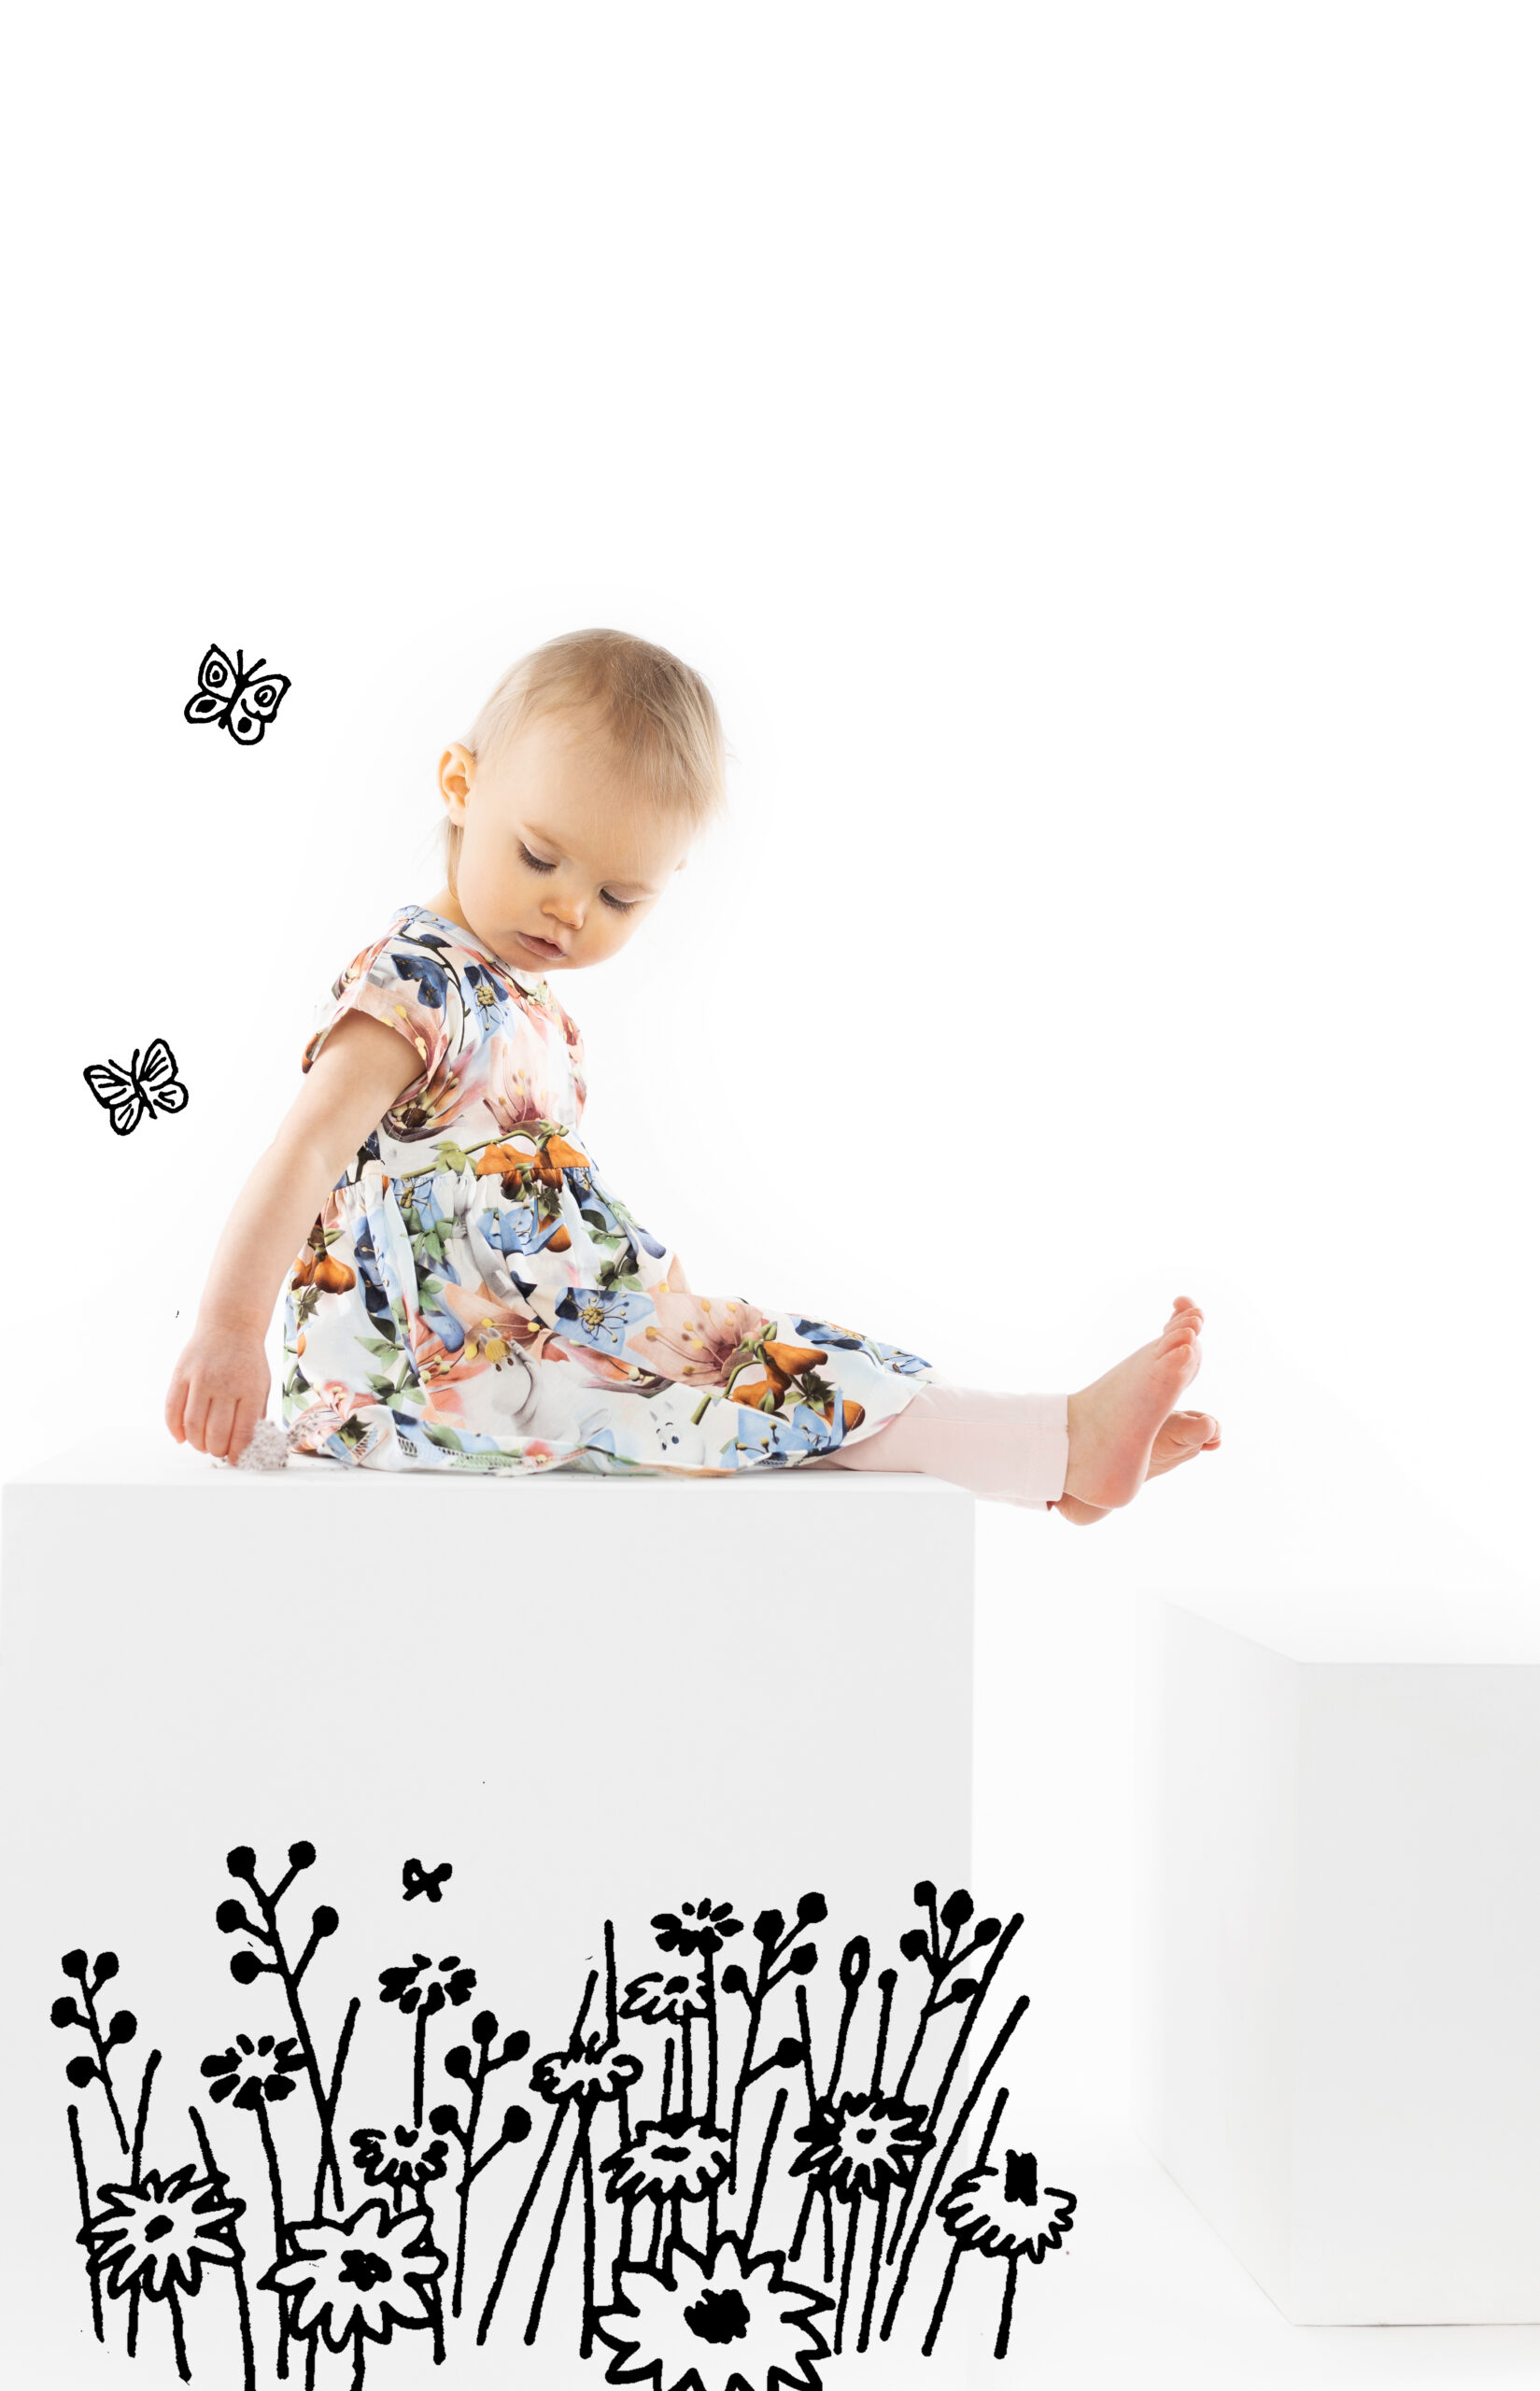 Martinex Moomin Anemone Dress Baby Rose